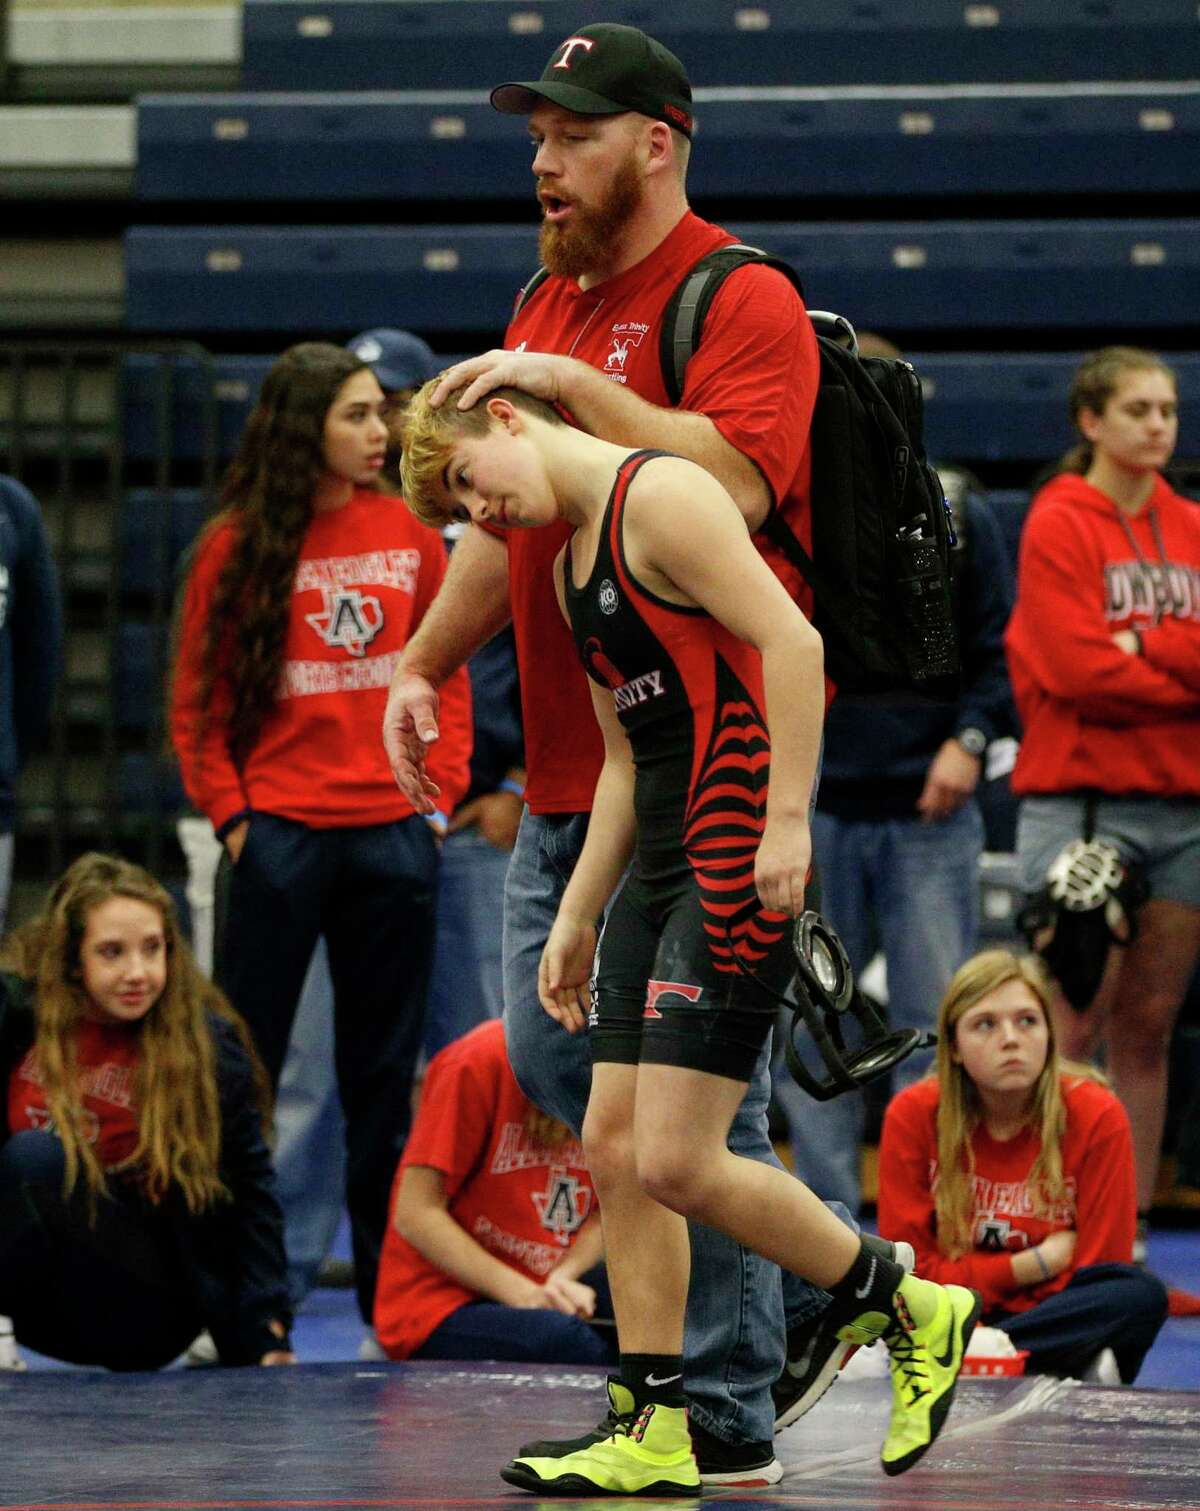 Would rather wrestle boys According to Mack Beggs' mom and grandmother, he would rather wrestle in the boys division, but UIL rules state that athletes must compete in the gender identified on the athlete's birth certificate.